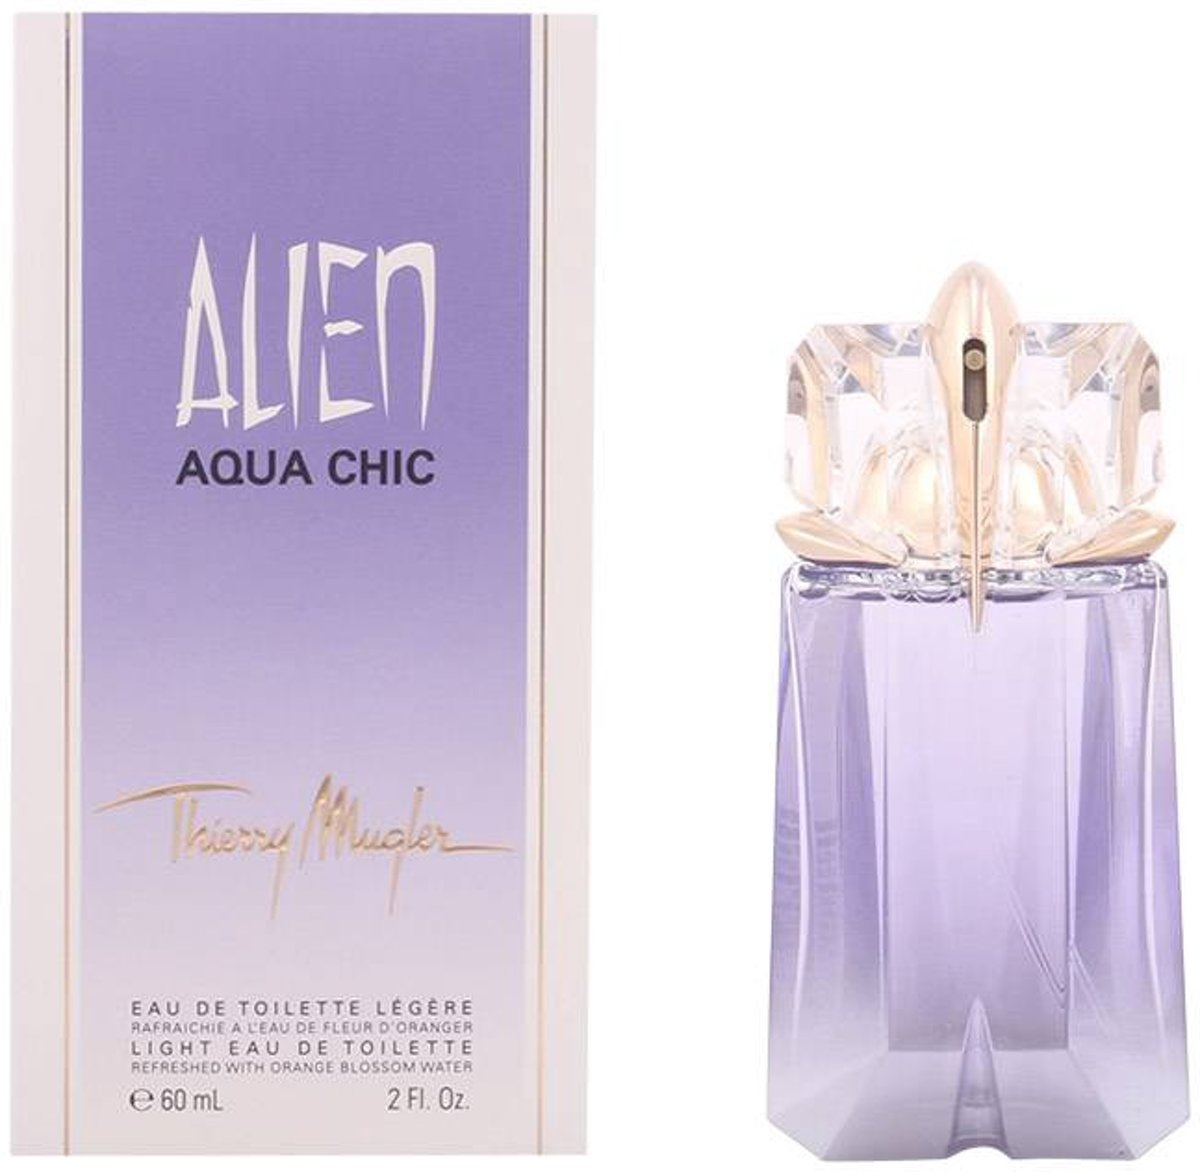 Thierry Mugler Alien Aqua Chic - 60 ml - eau de toilette spray - damesparfum kopen